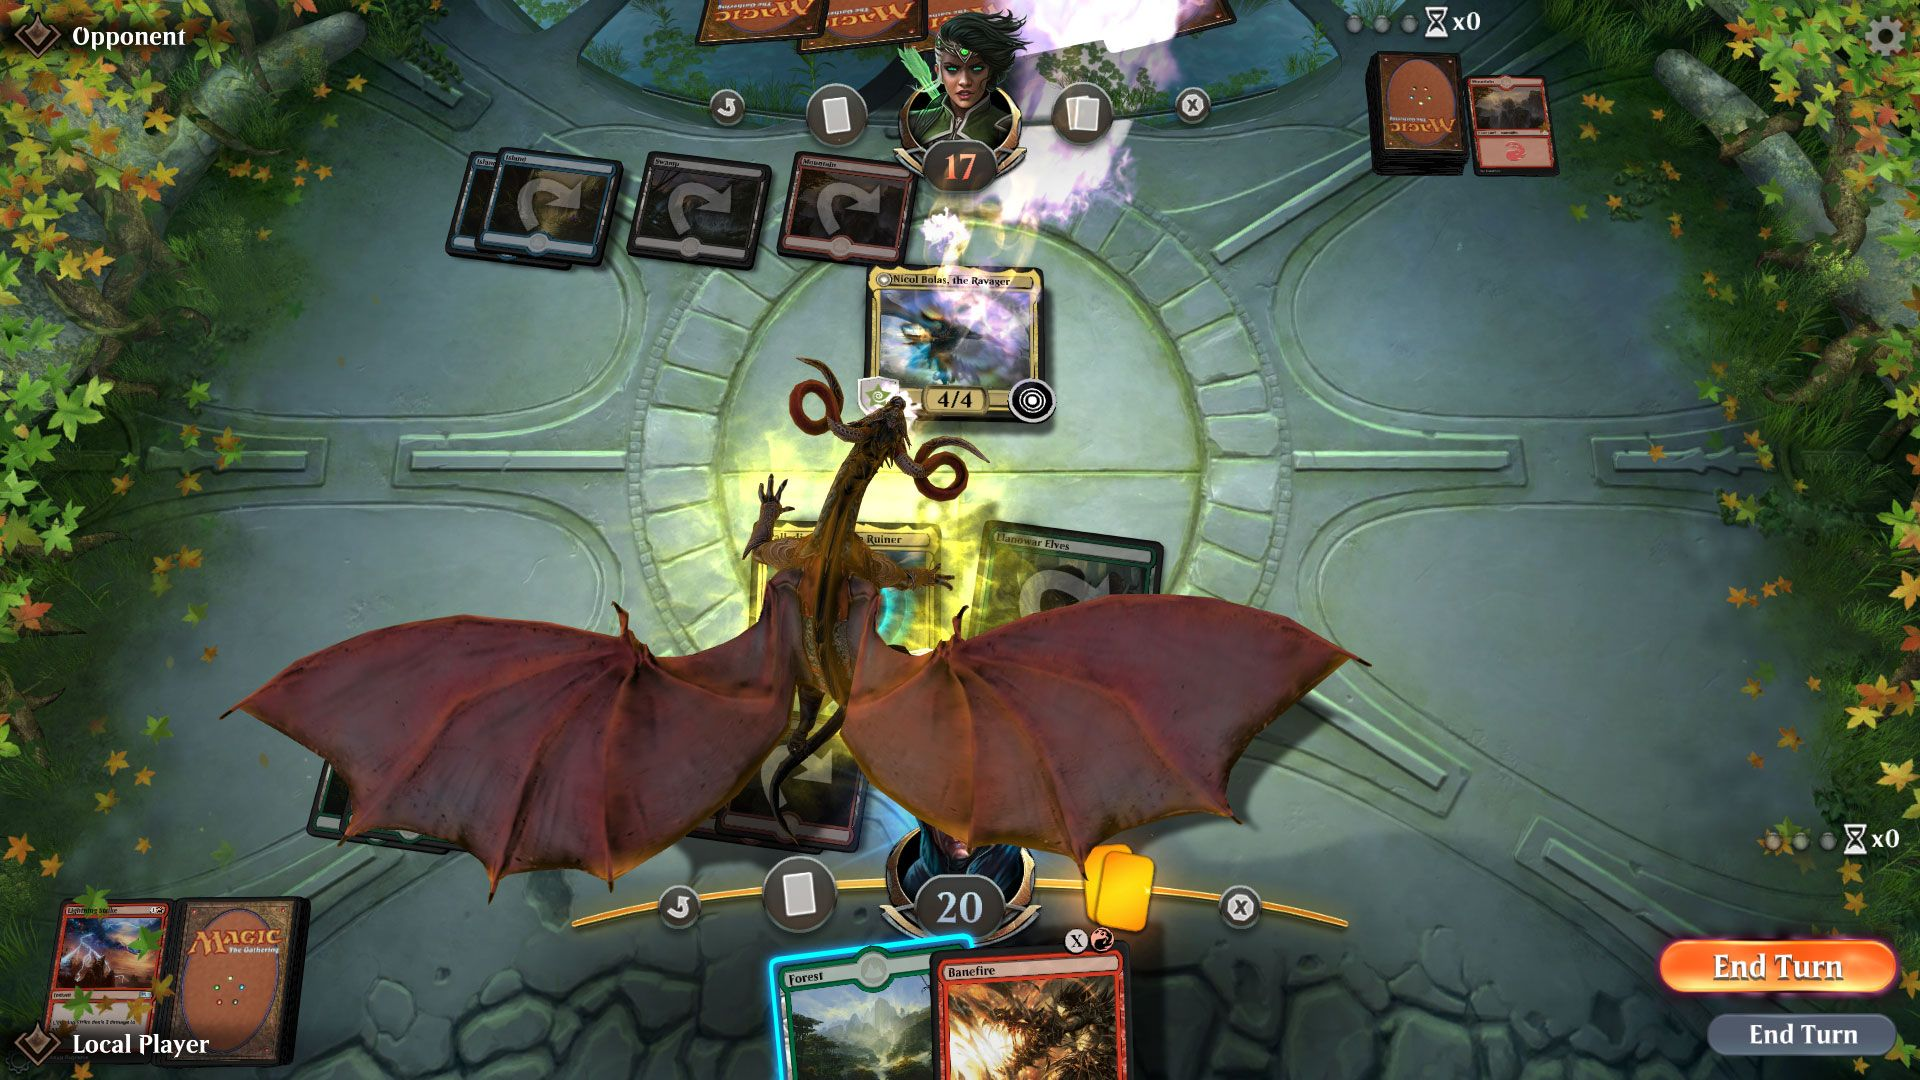 Mtg Arena Hands On Impressions Easy Interface Makes Playing Simple